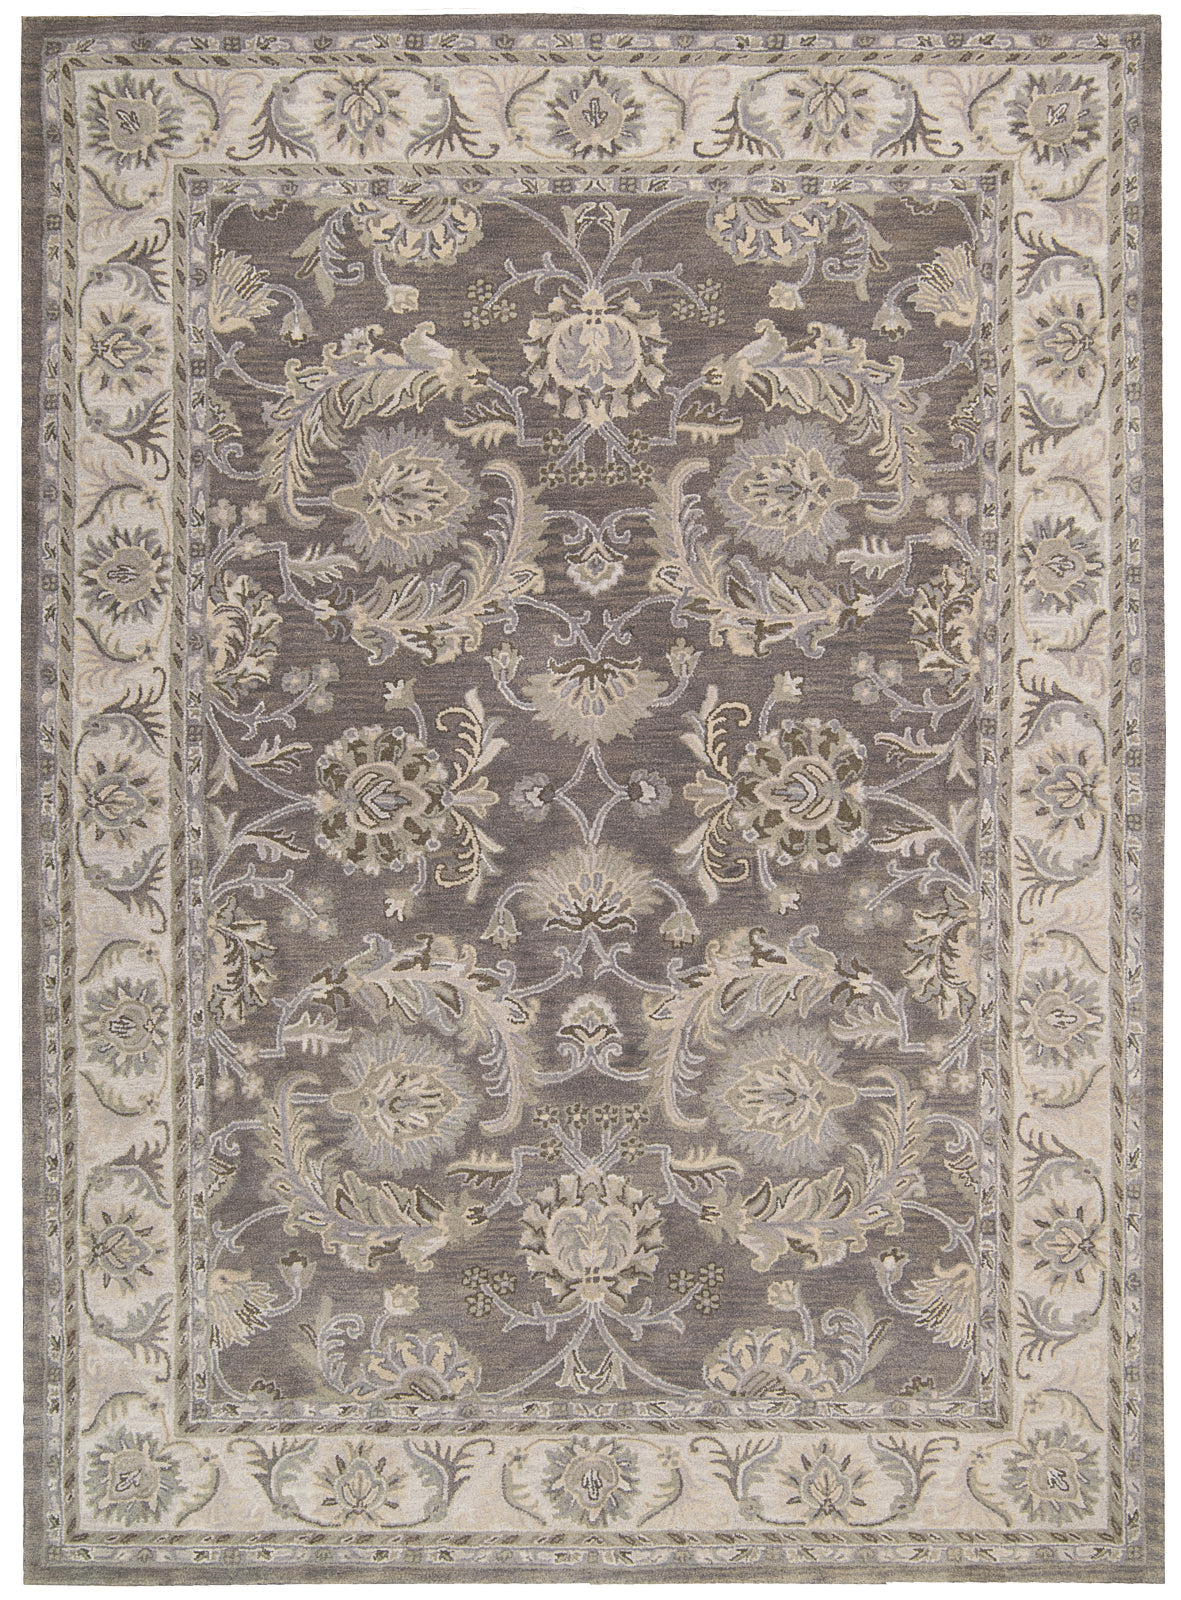 Nourison Sepia SEP05 Grey Area Rug by Joseph Abboud main image